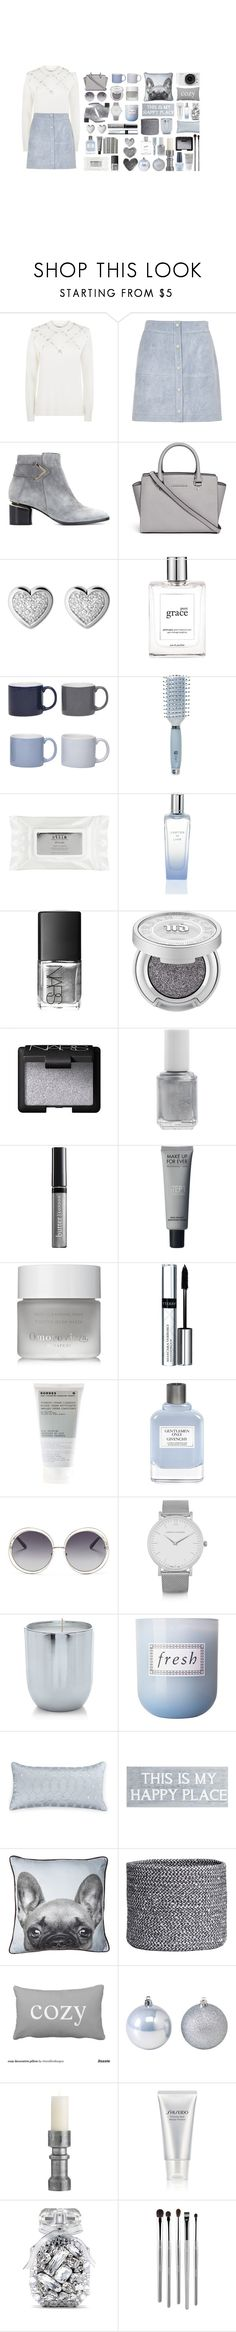 """winter wonderland"" by julia463 ❤ liked on Polyvore featuring 3.1 Phillip Lim, River Island, Nicholas Kirkwood, MICHAEL Michael Kors, Links of London, philosophy, Jansen+Co, WALL, Goody and Stila"